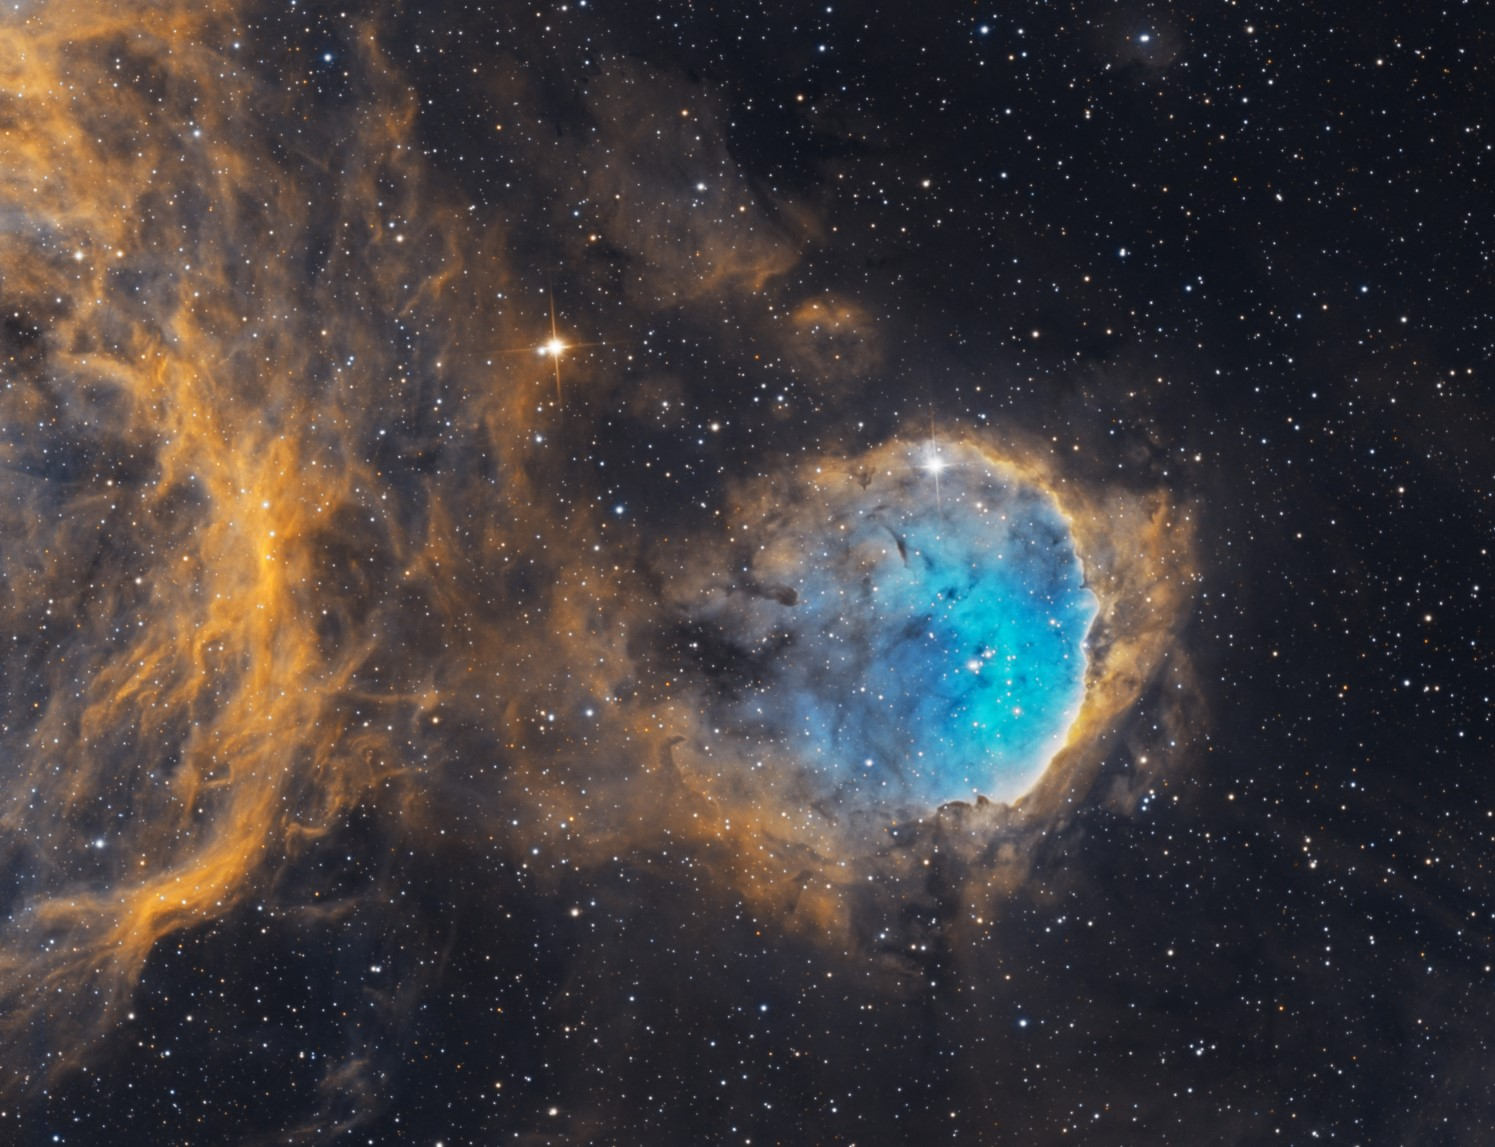 NGC 3324 Meet NGC 3324 and IC2599 The Gabriela Mistral Nebula